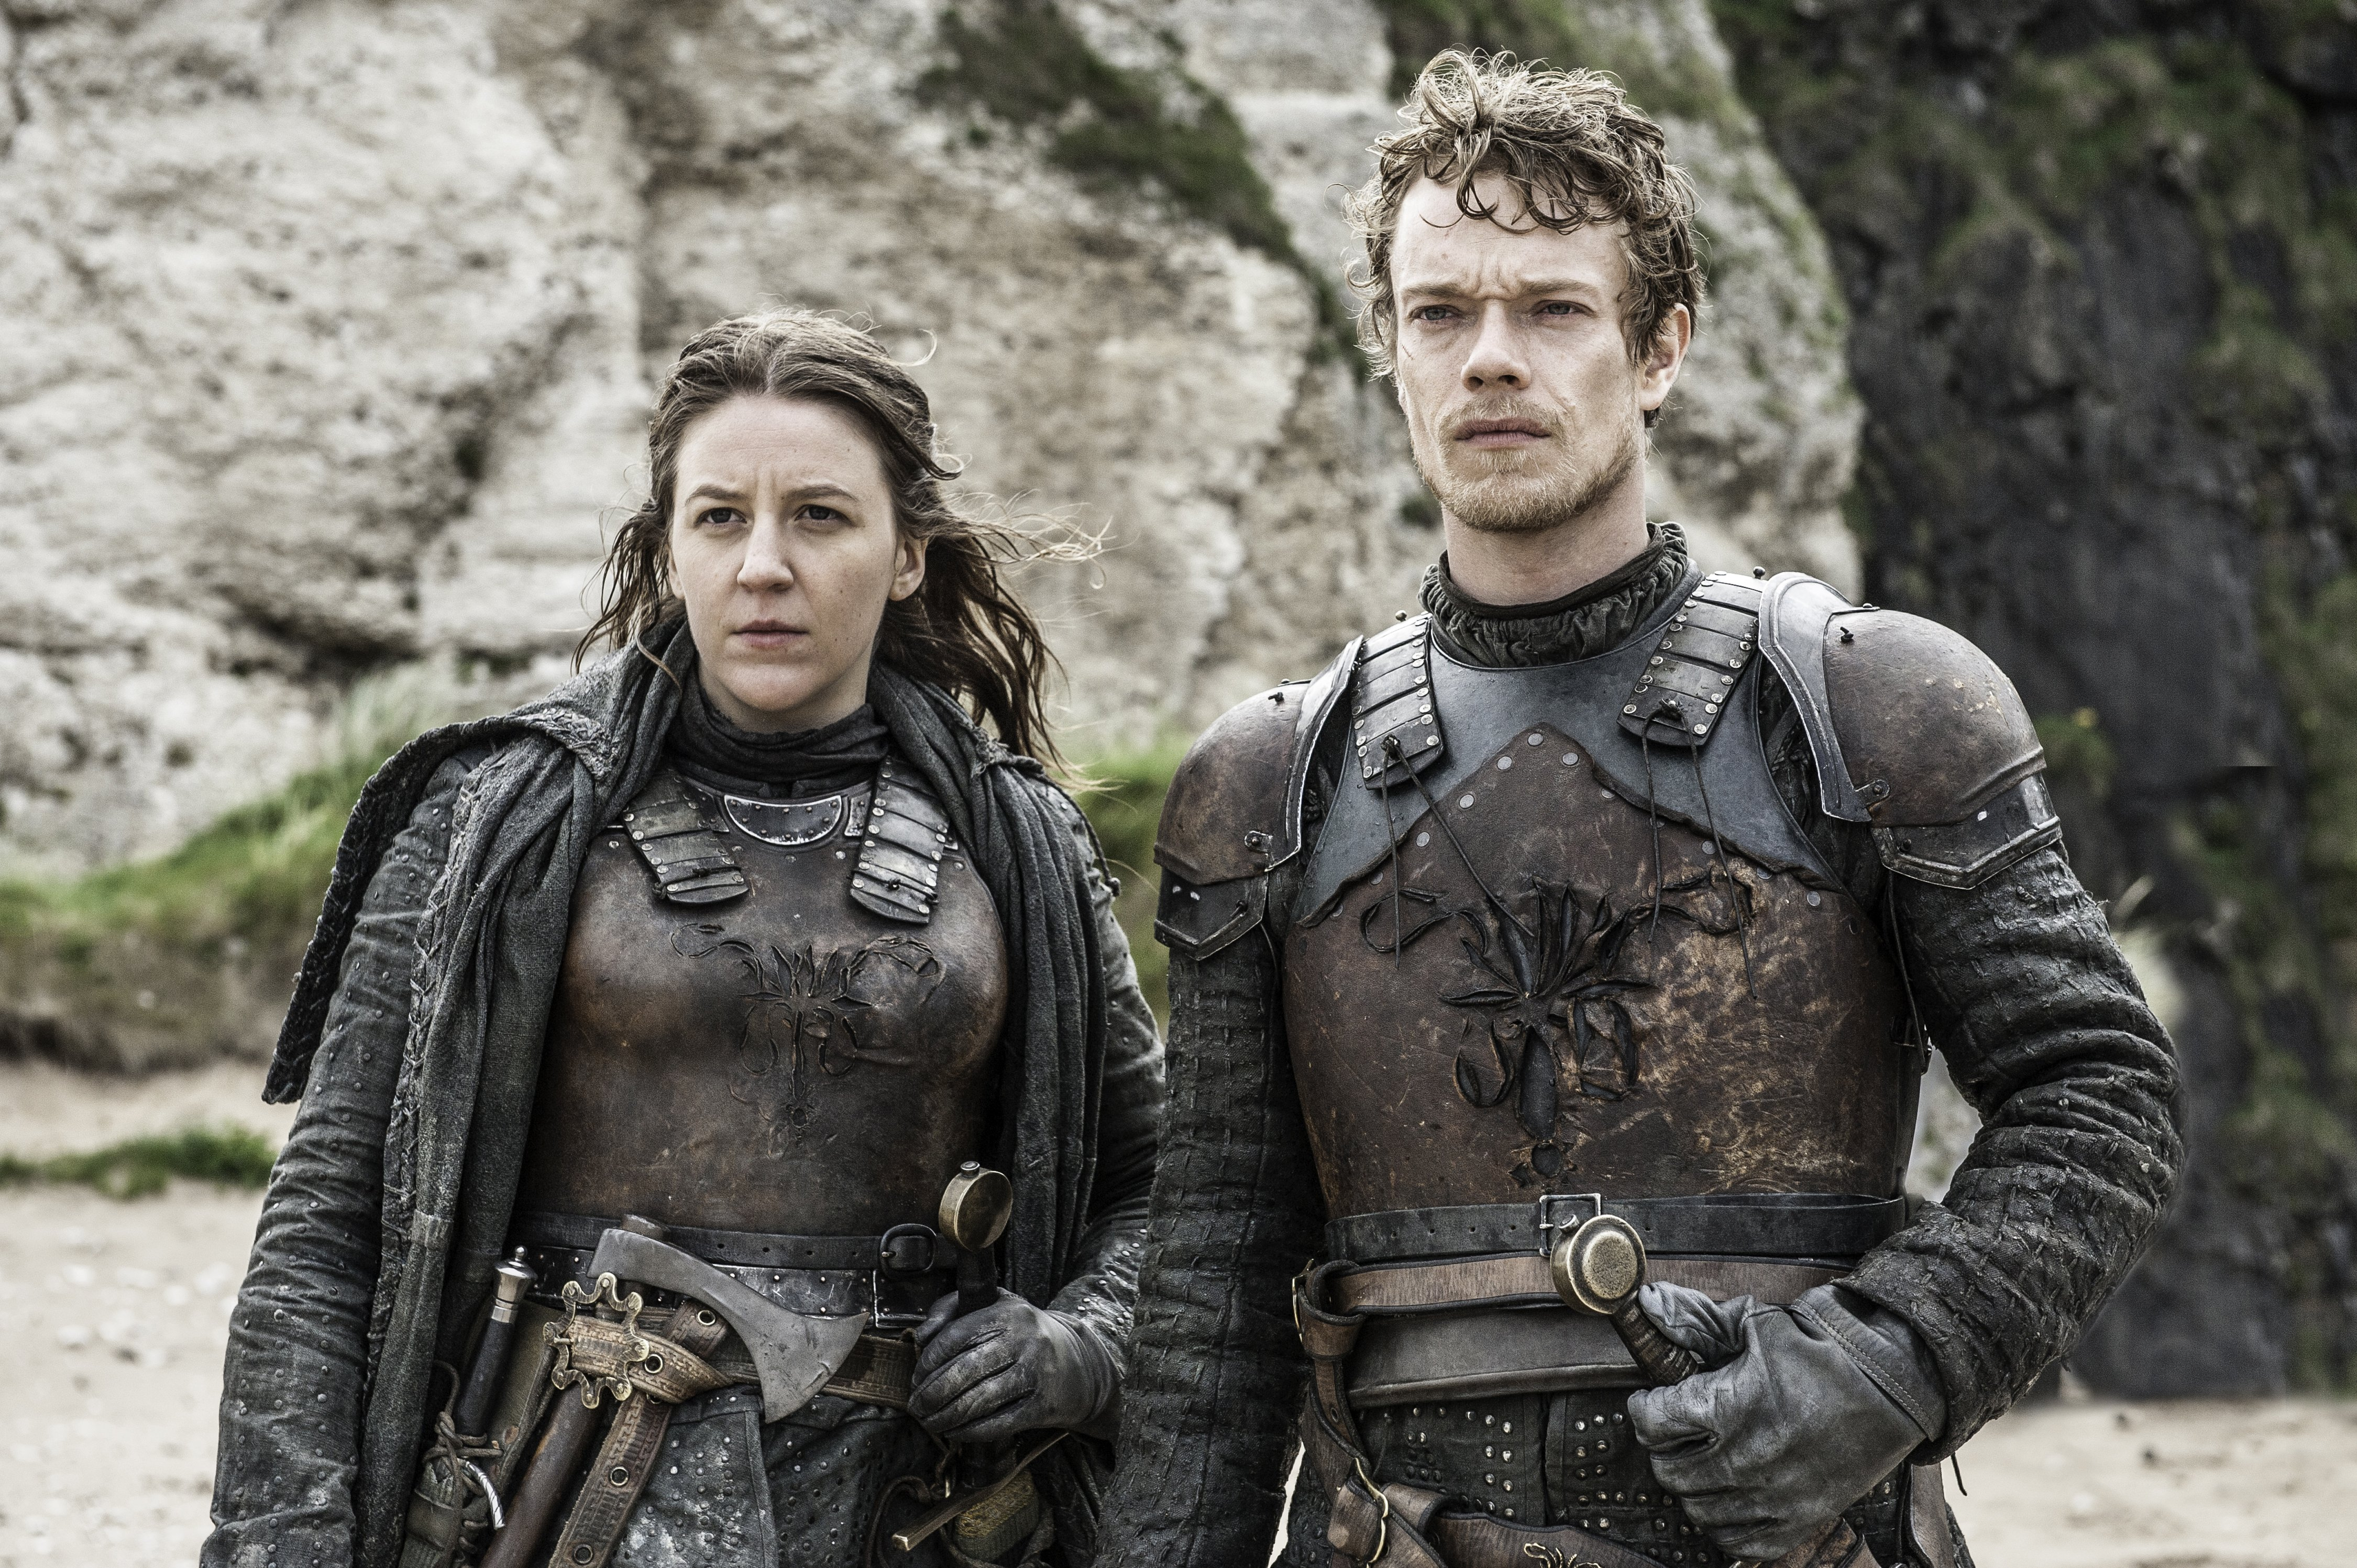 http://vignette3.wikia.nocookie.net/gameofthrones/images/1/16/Theon_and_yara_promo_6x5.jpg/revision/latest?cb=20160523192622